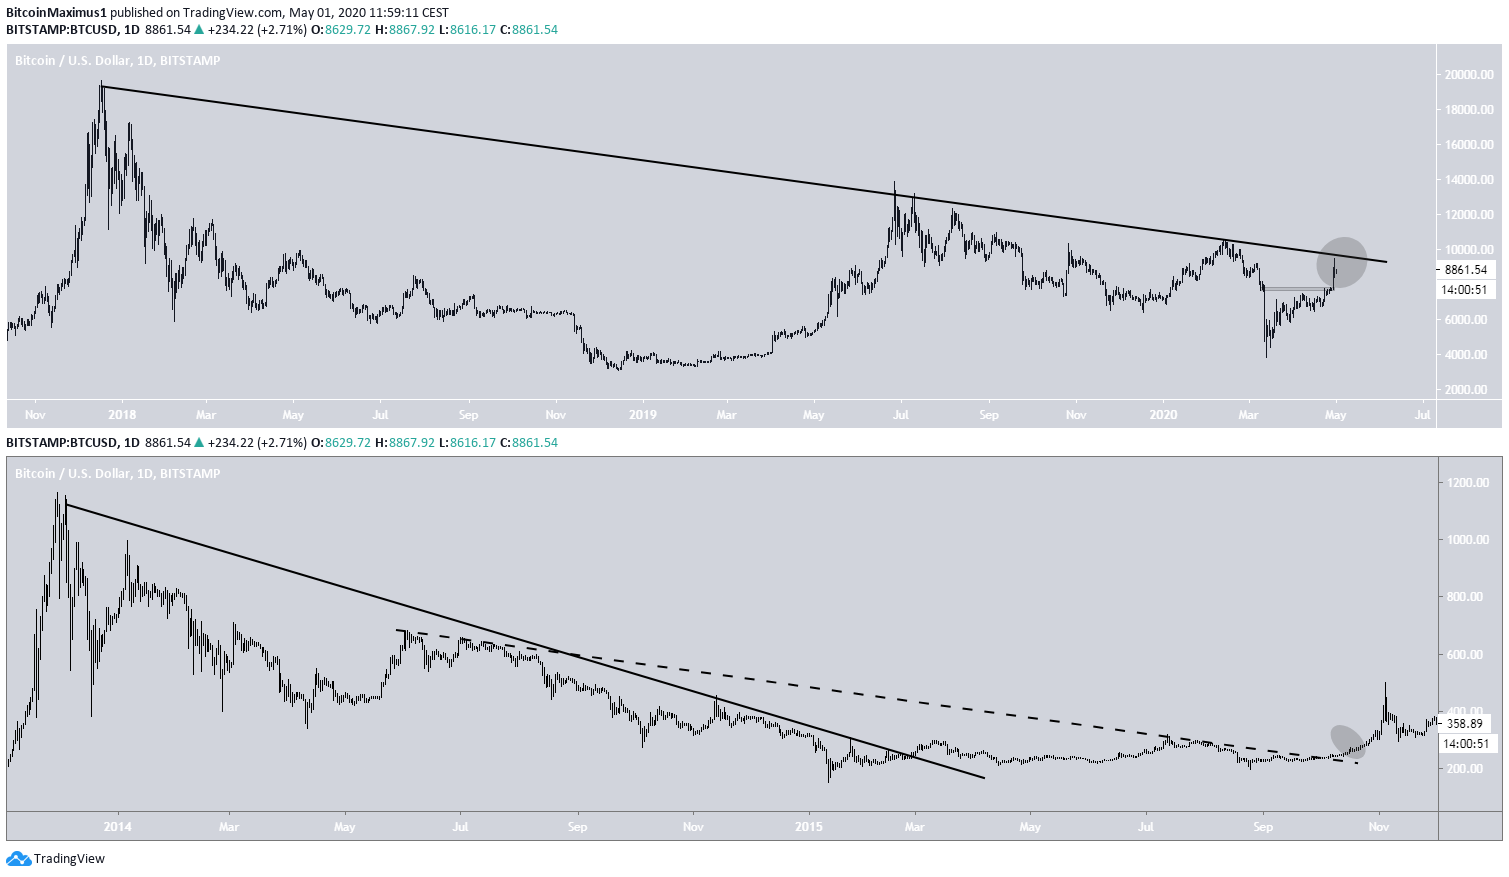 Bitcoin Side-By-Side comparison